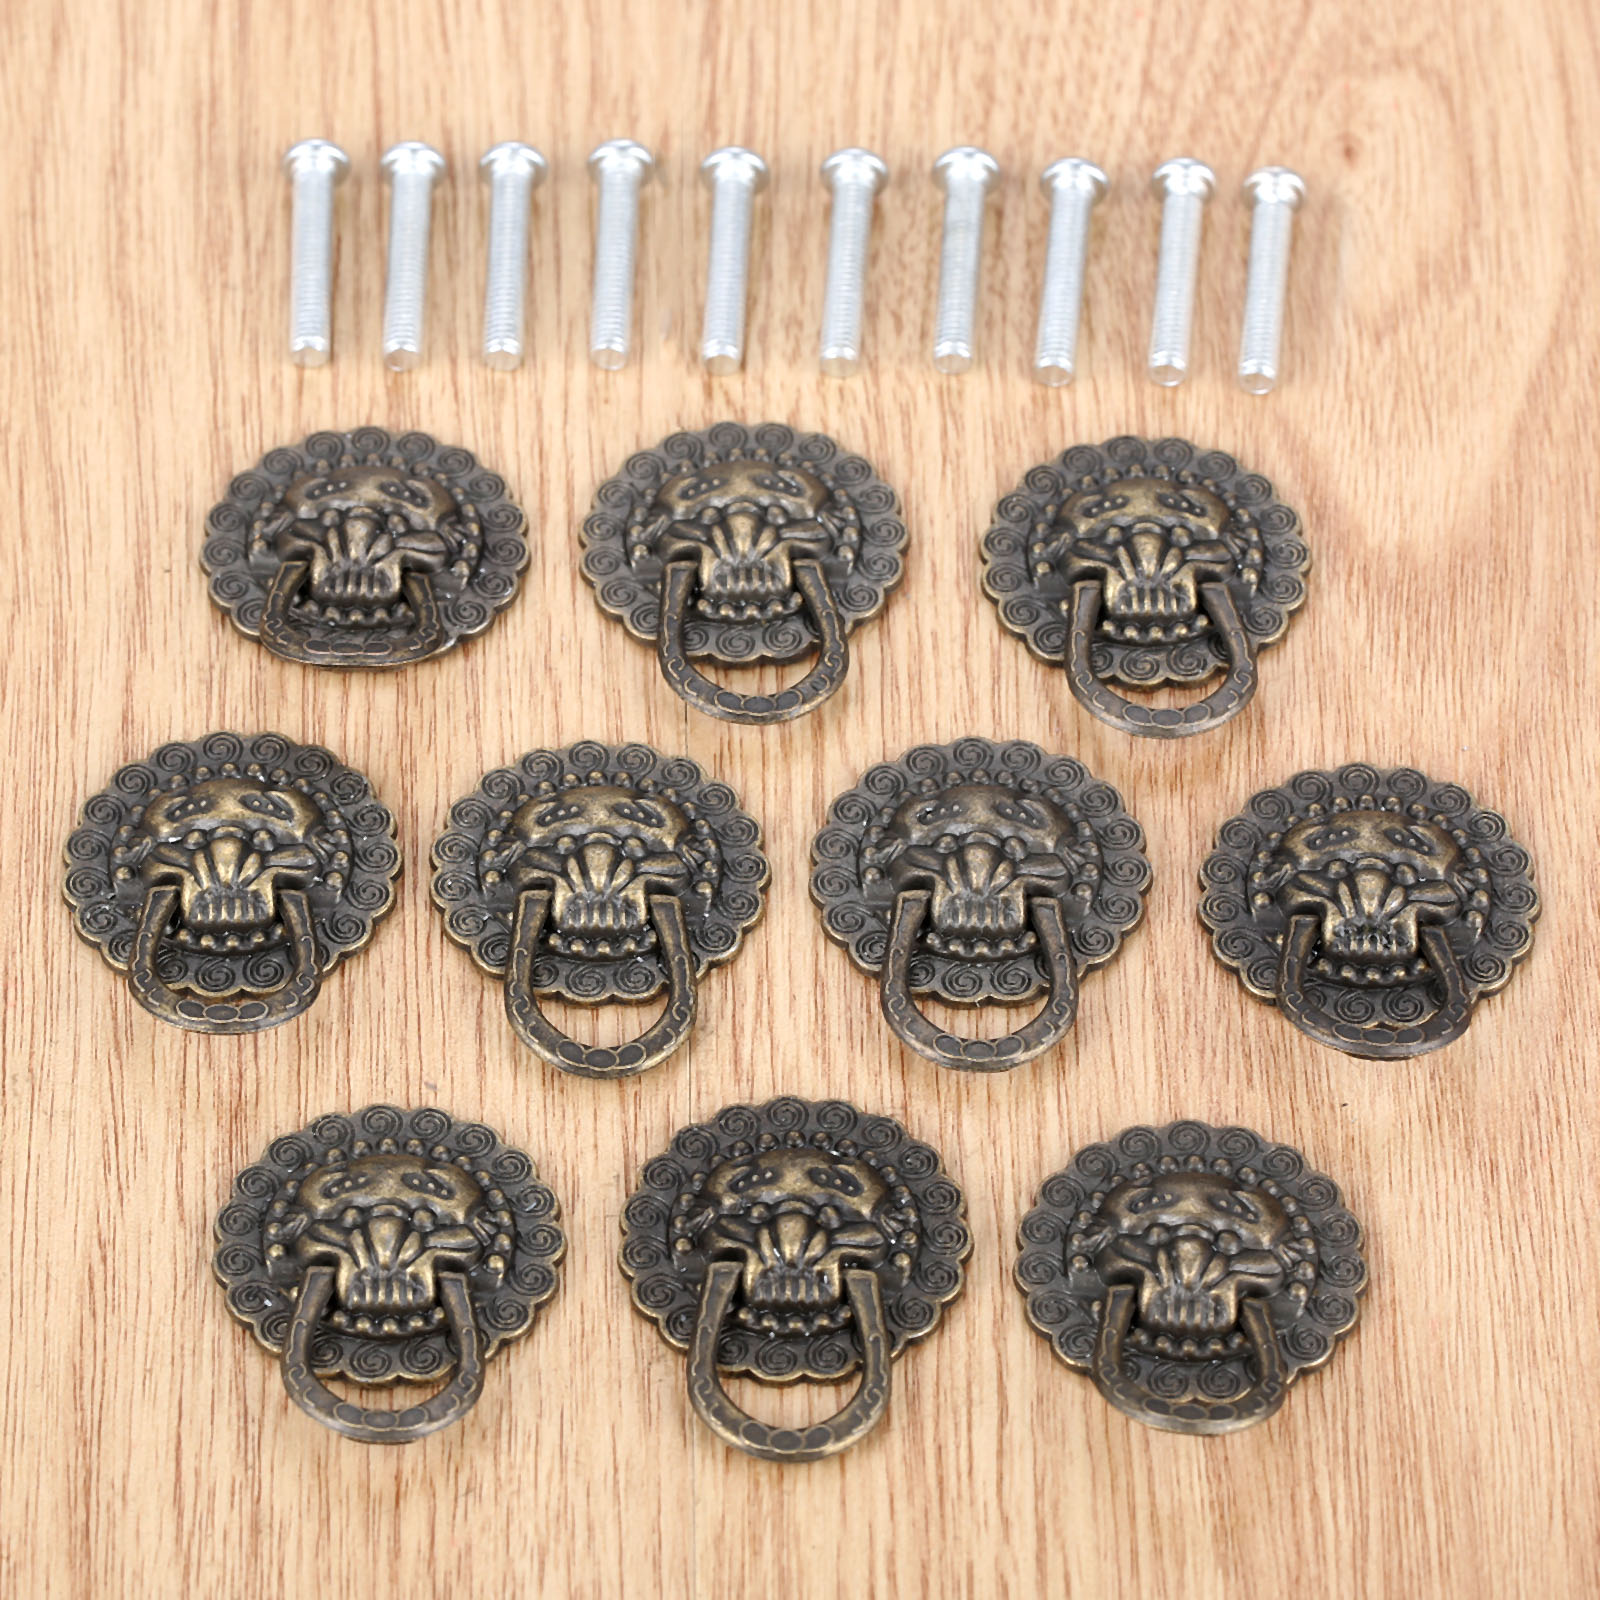 10Pcs Furniture Handles 29*37mm Beast for Lion Head Antique Alloy Handle Wardrobe Drawer Door Pull Retro Decoration With Screw